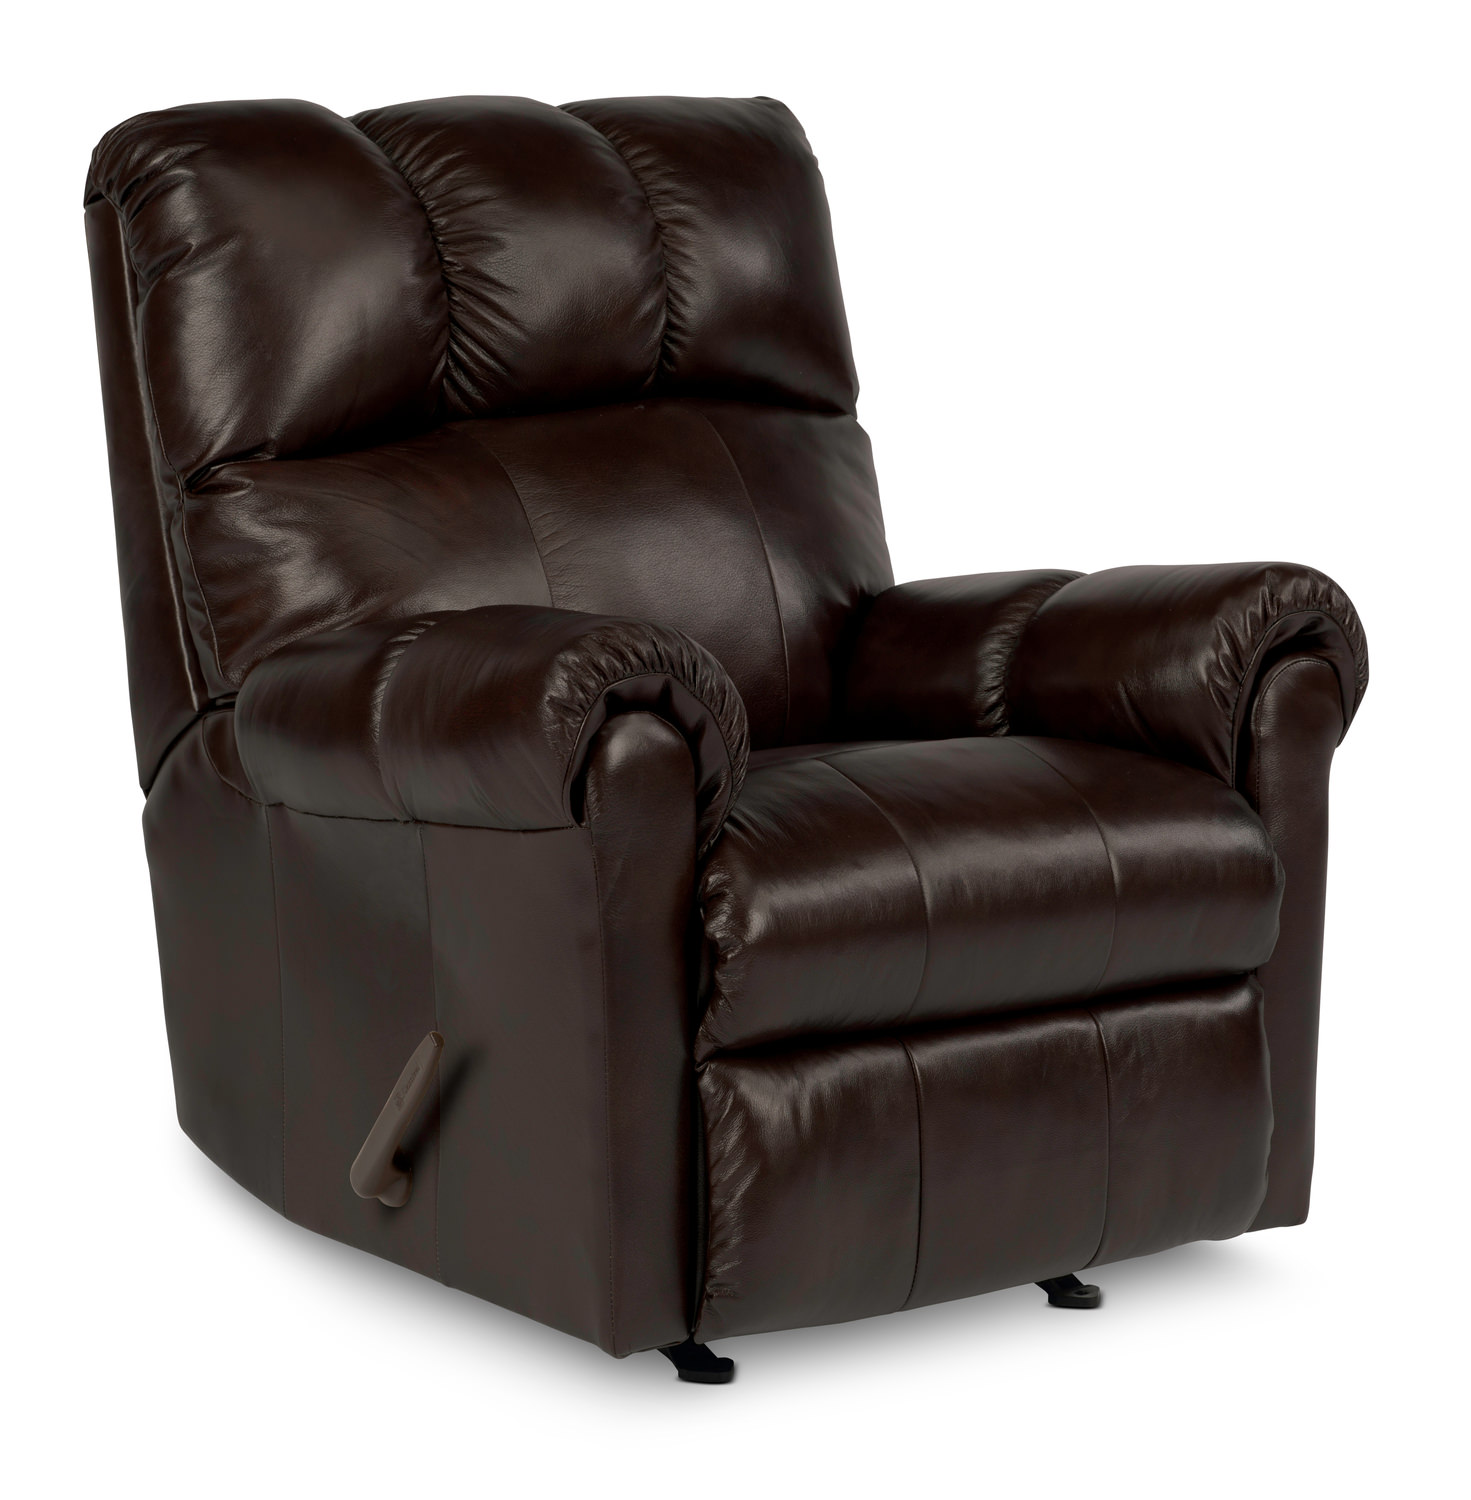 Mcgee Leather Rocker Recliner HOM Furniture